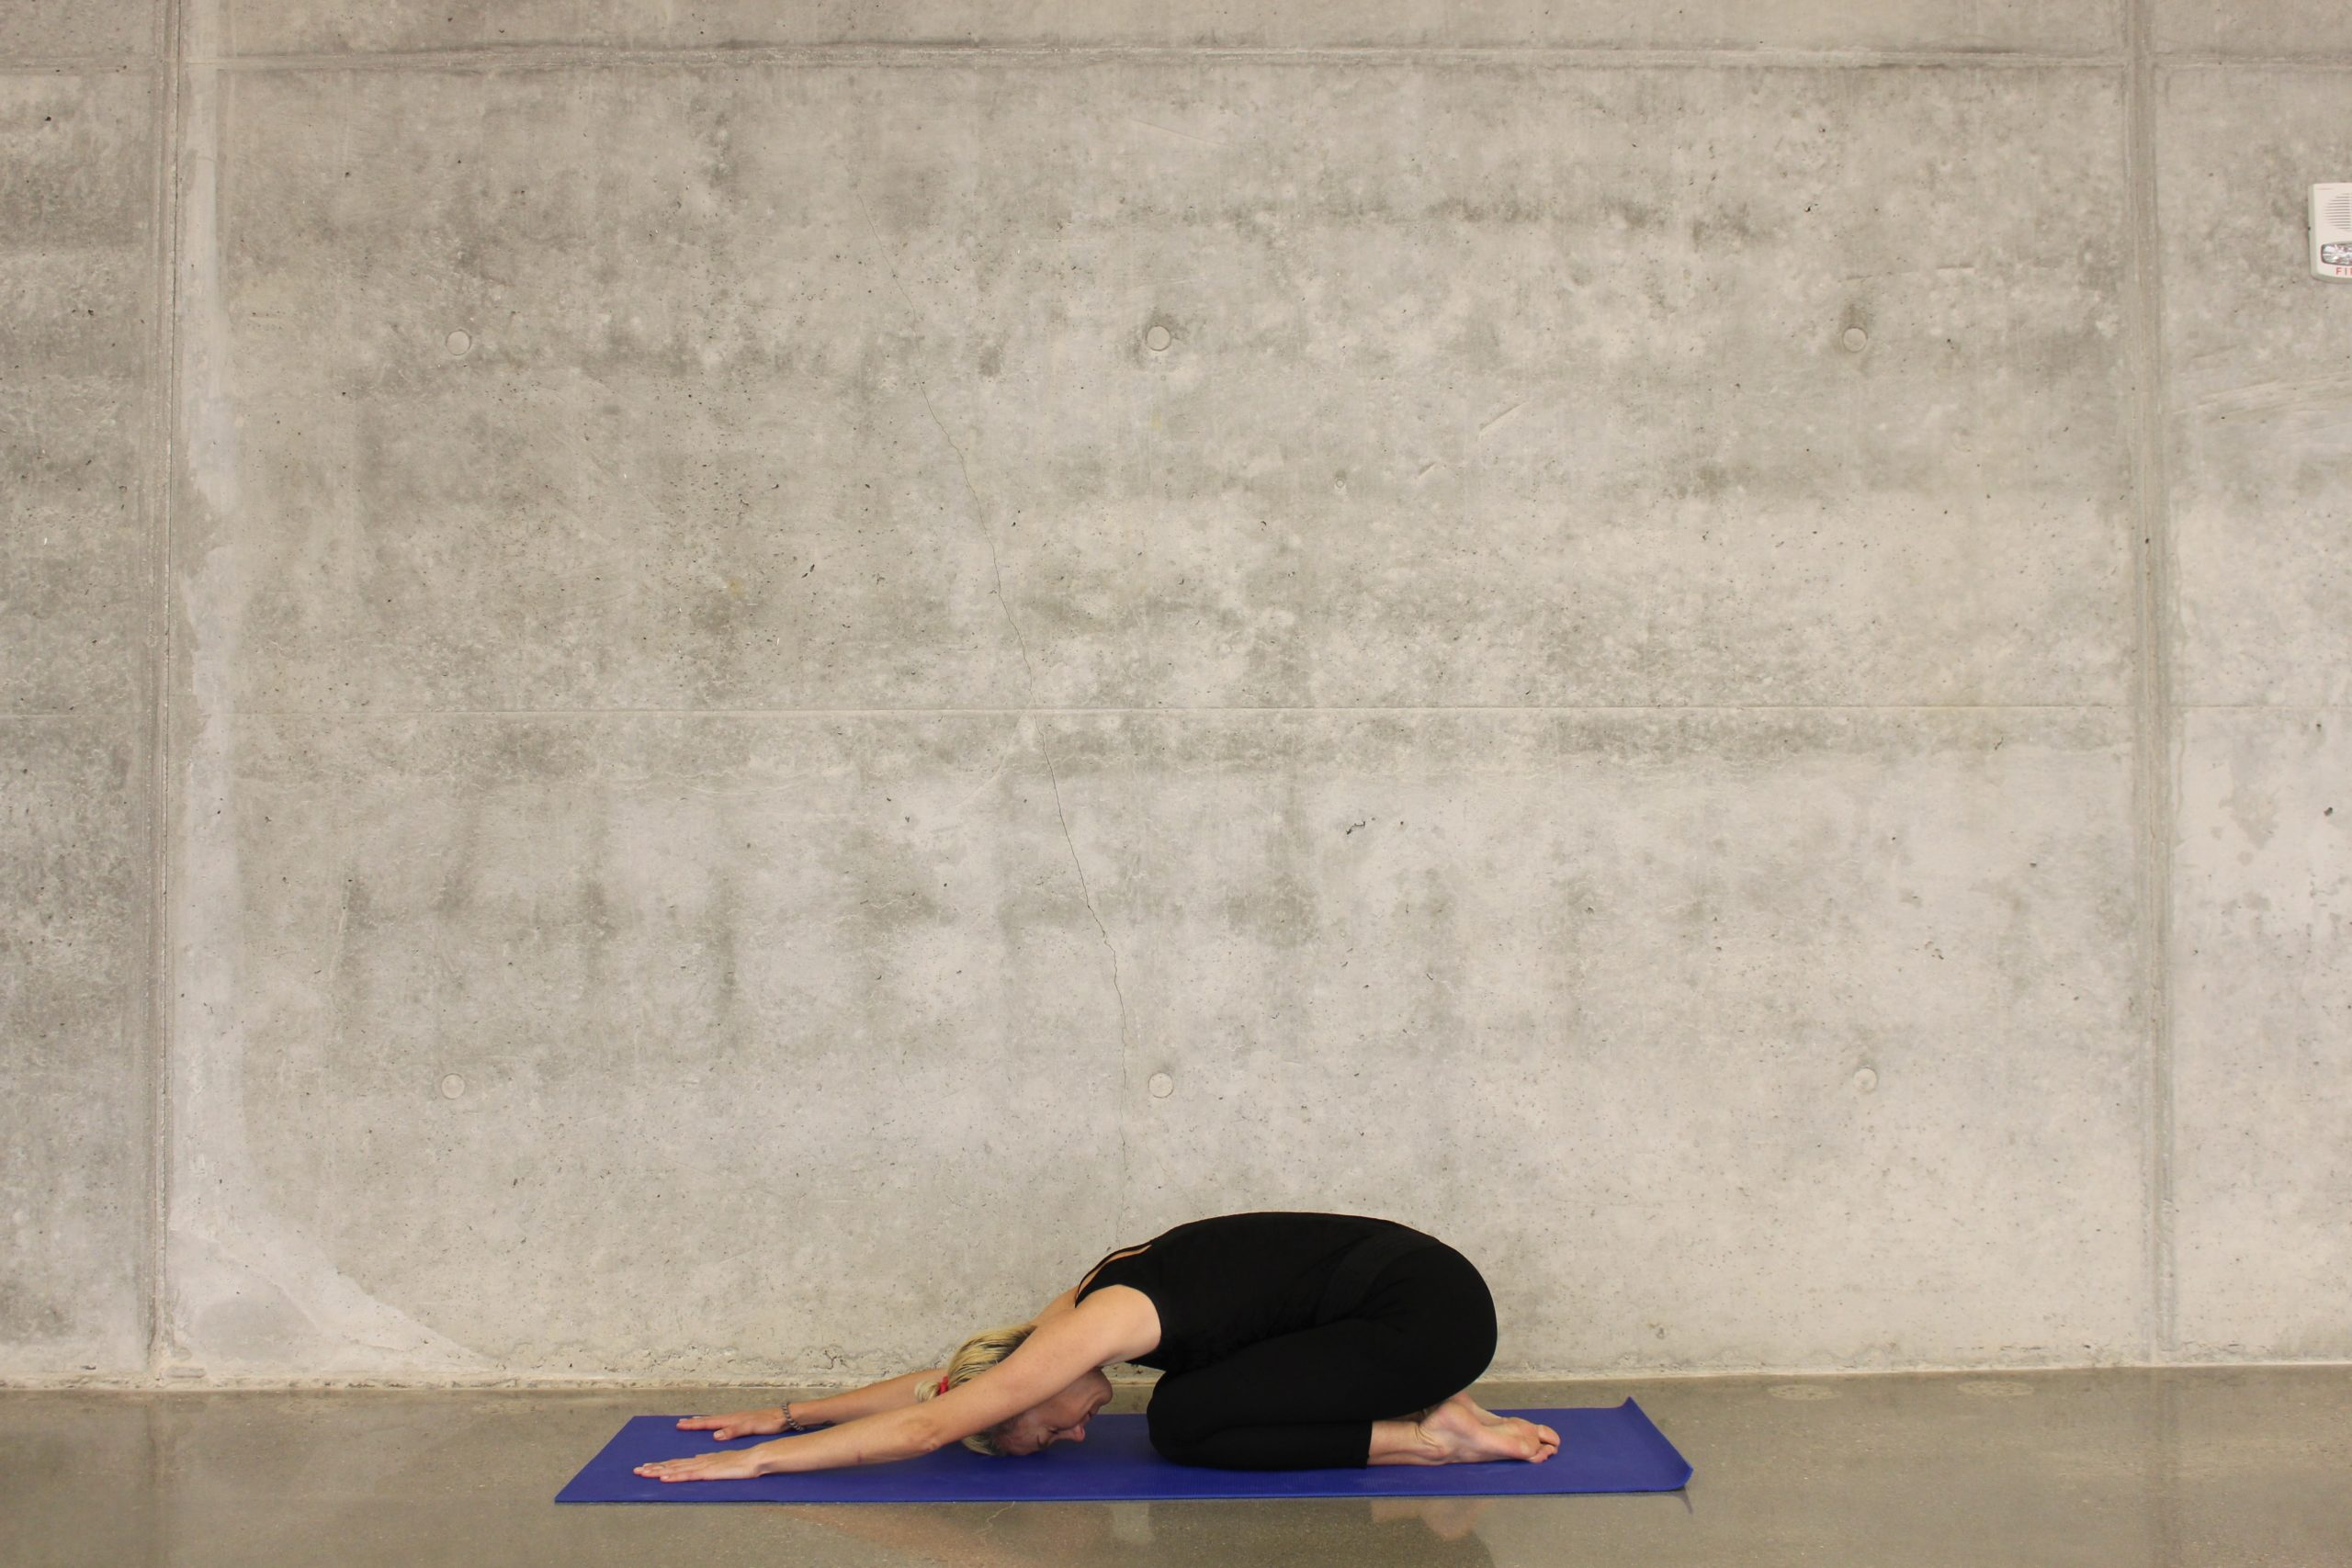 Balasana, Woman doing child's pose yoga